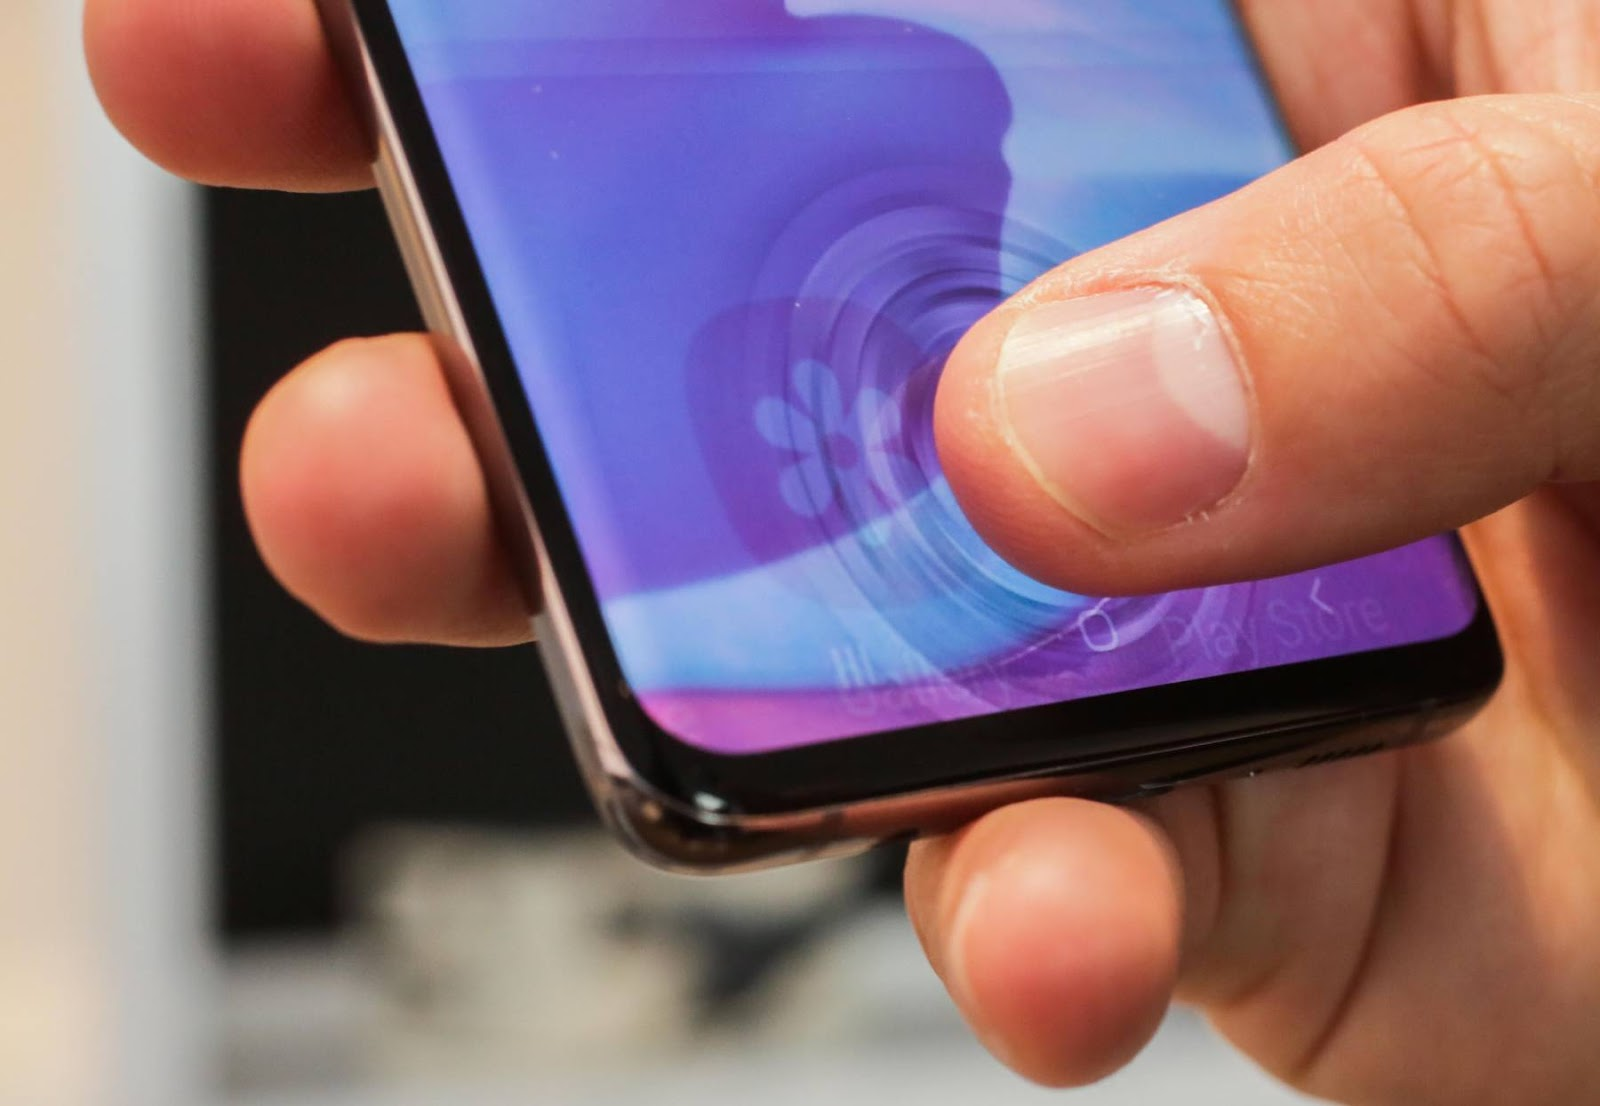 In an experiment a security researcher attempted to fool the Samsung Galaxy S10's ultrasonic fingerprint scanner by using 3d printing